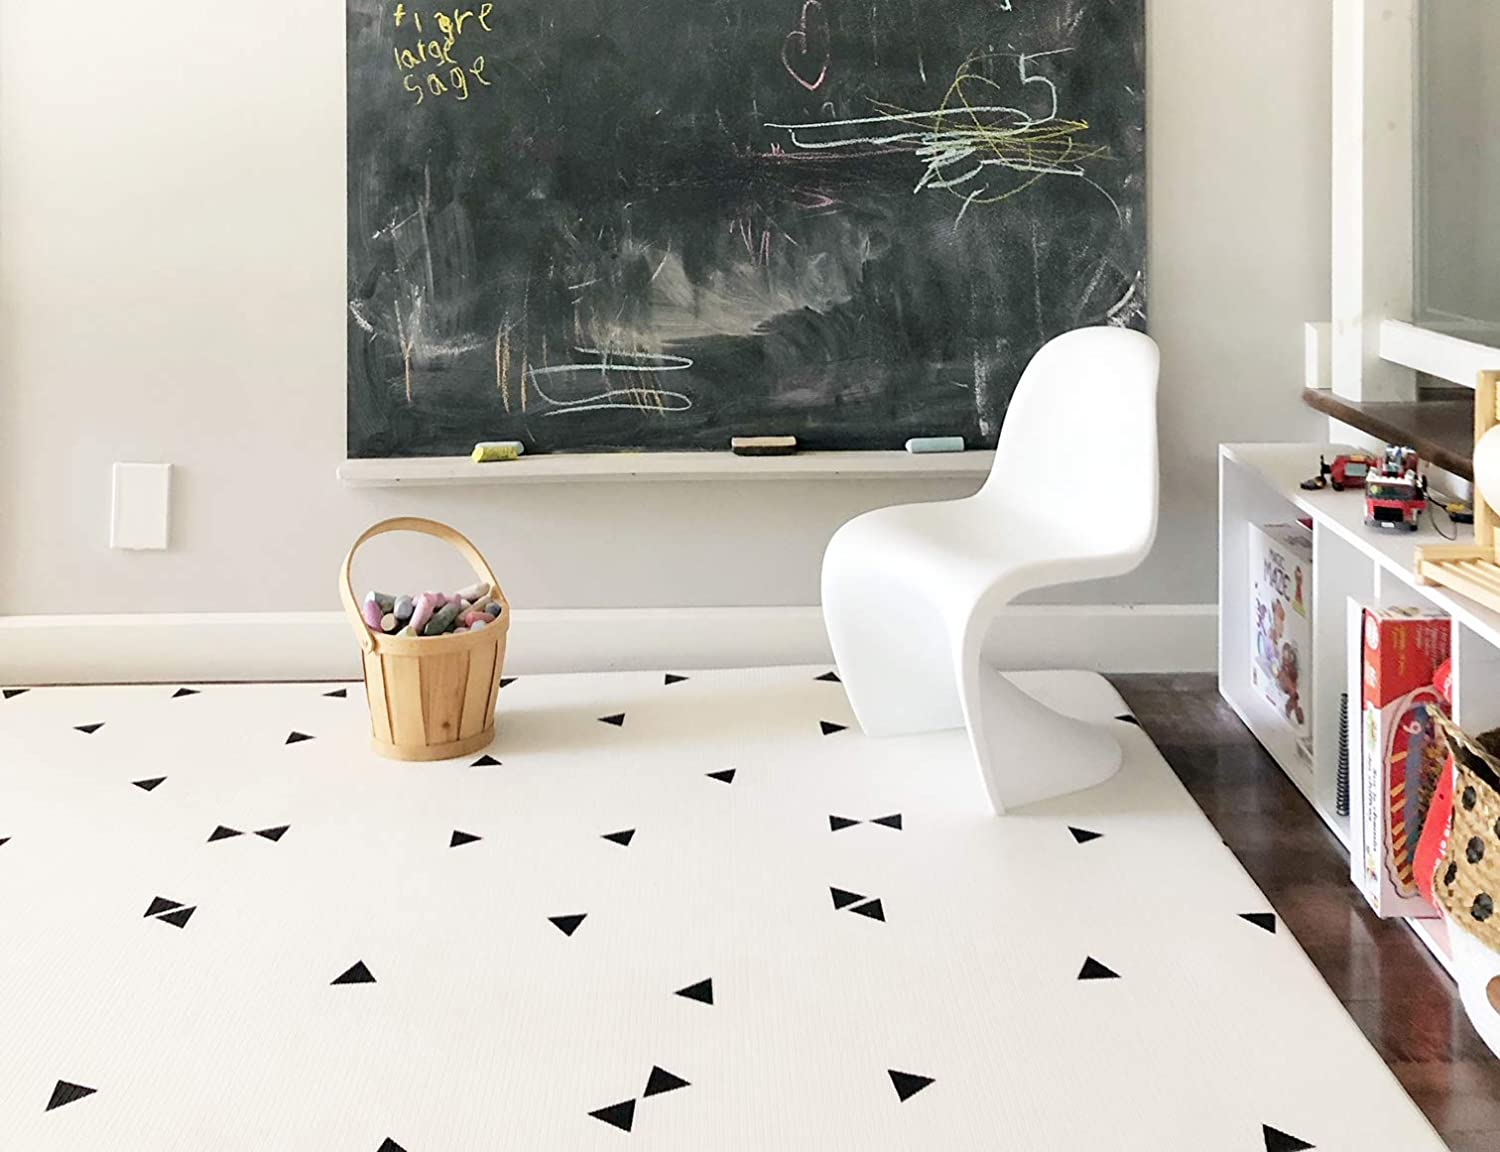 Ofie mat, zen line and triangle by Little Bot, 2m x 1.4m size, baby play mat, soft foam mat, durable and pets friendly, non-toxic, by Little Bot Little Bot Inc.